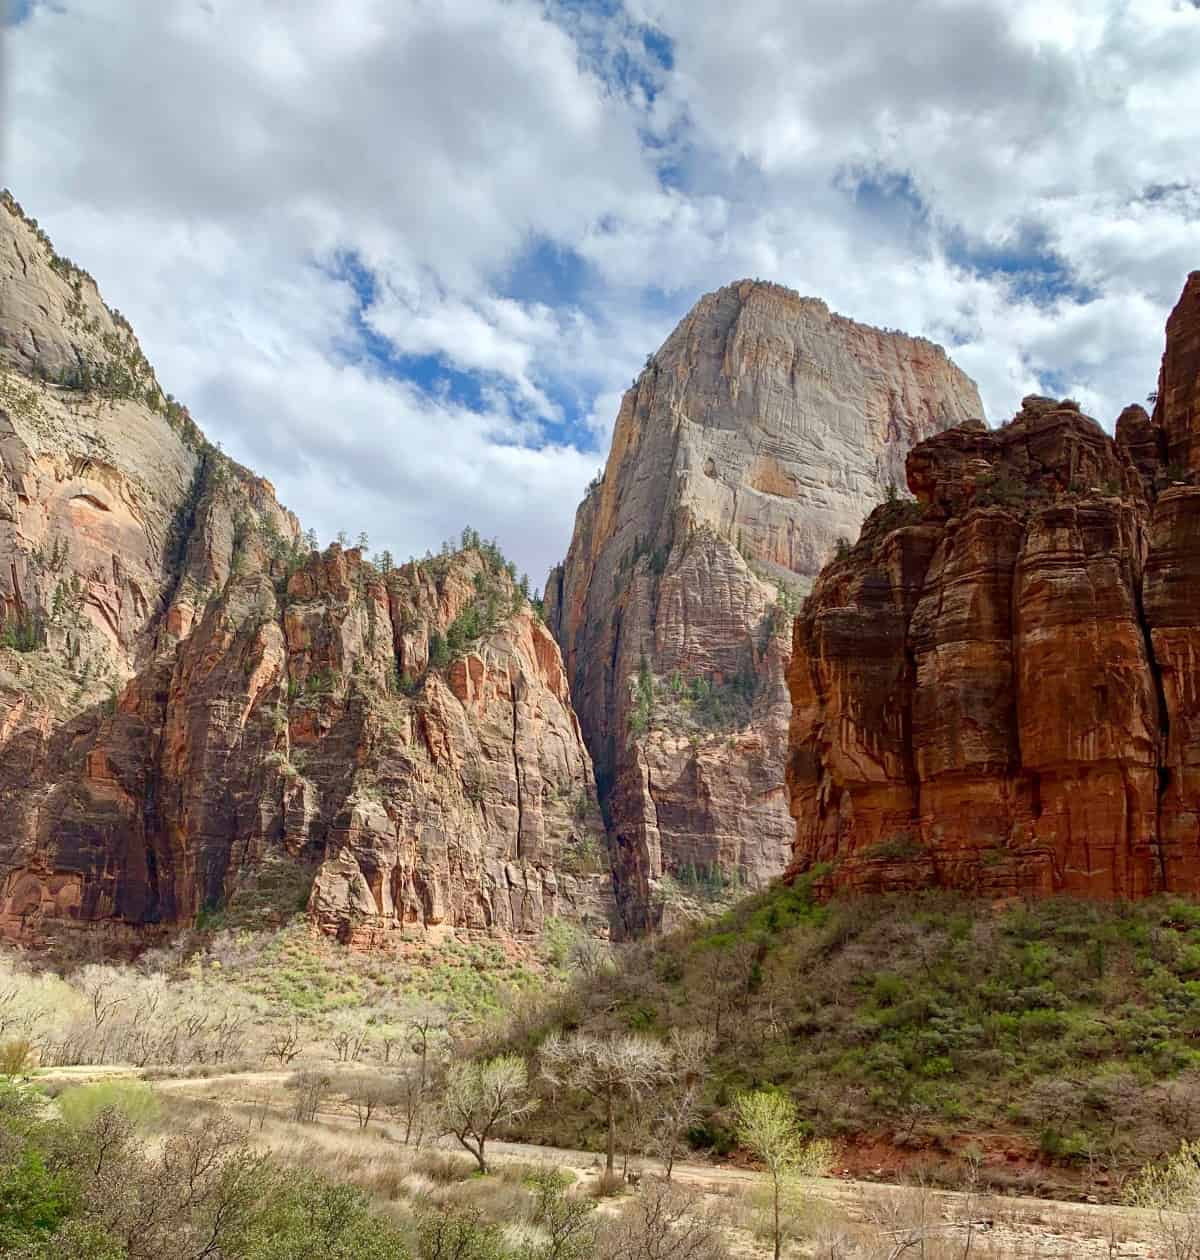 How To Plan a Visit to Zion National Park During COVID | If you're wanting to visit Zion during COVID, it's important to plan ahead and know about the changes and restrictions. What you need to know about Zion shuttle tickets, shuttle stop closures, alternative ways to visit, and more! What to do in Zion. #nps #zion #covidrestrictions #traveltips #zionnationalpark